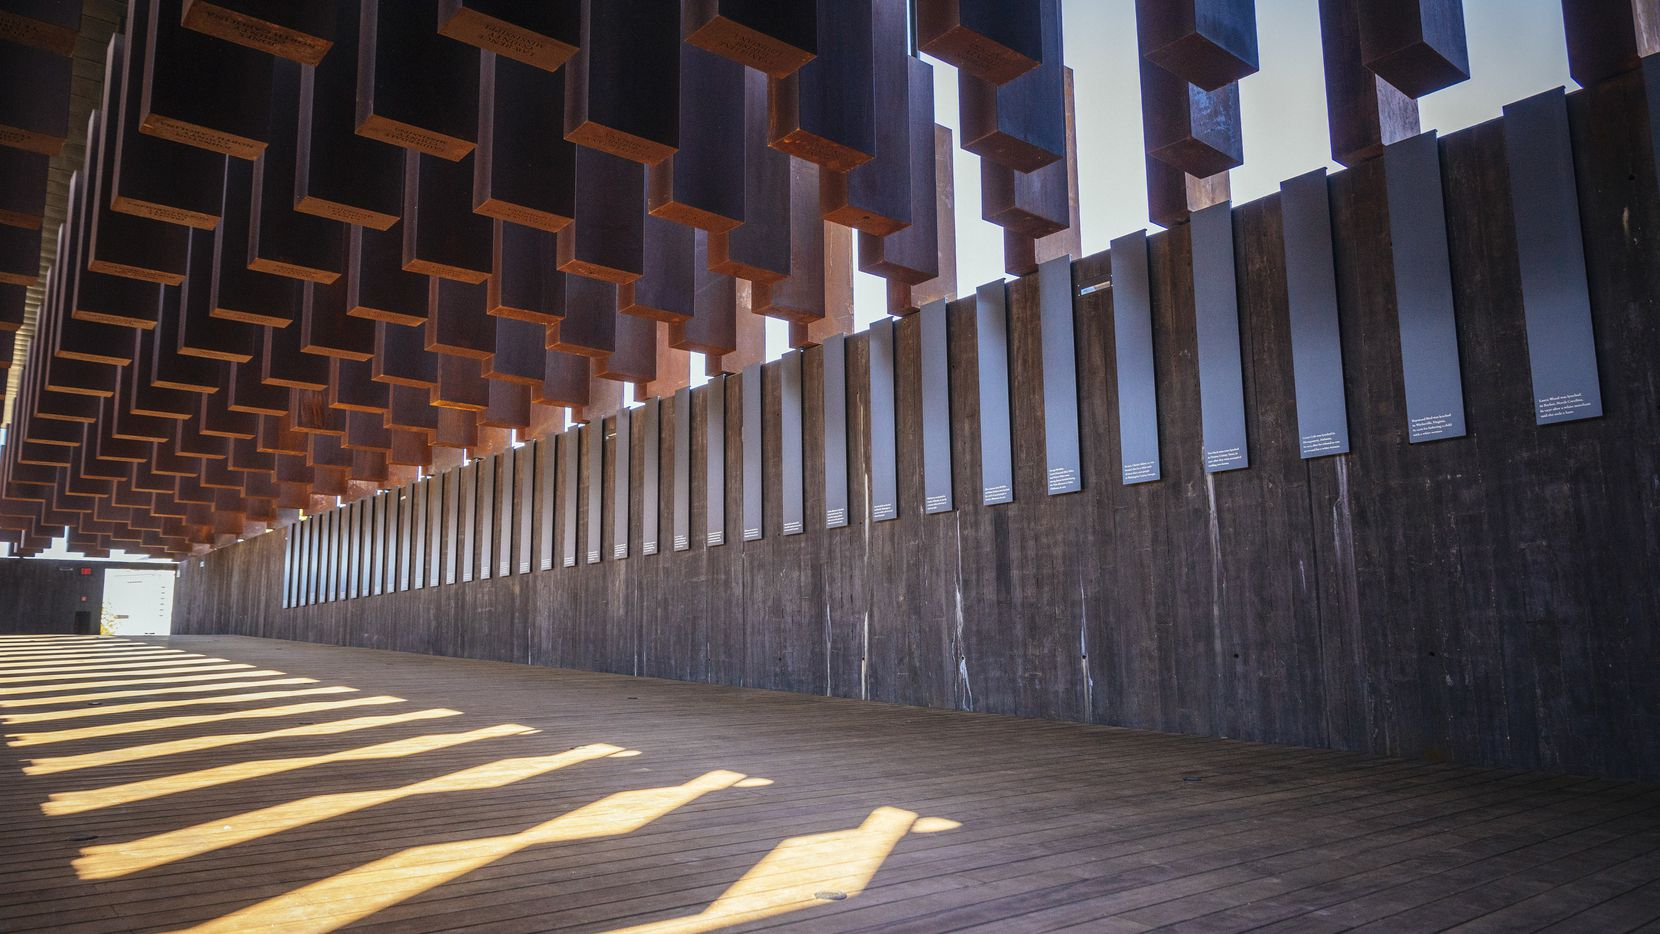 Eight hundred weathered steel columns, each one etched with the names of a lynching victim, hang from the roof of the new National Memorial for Peace and Justice in Montgomery, Ala.